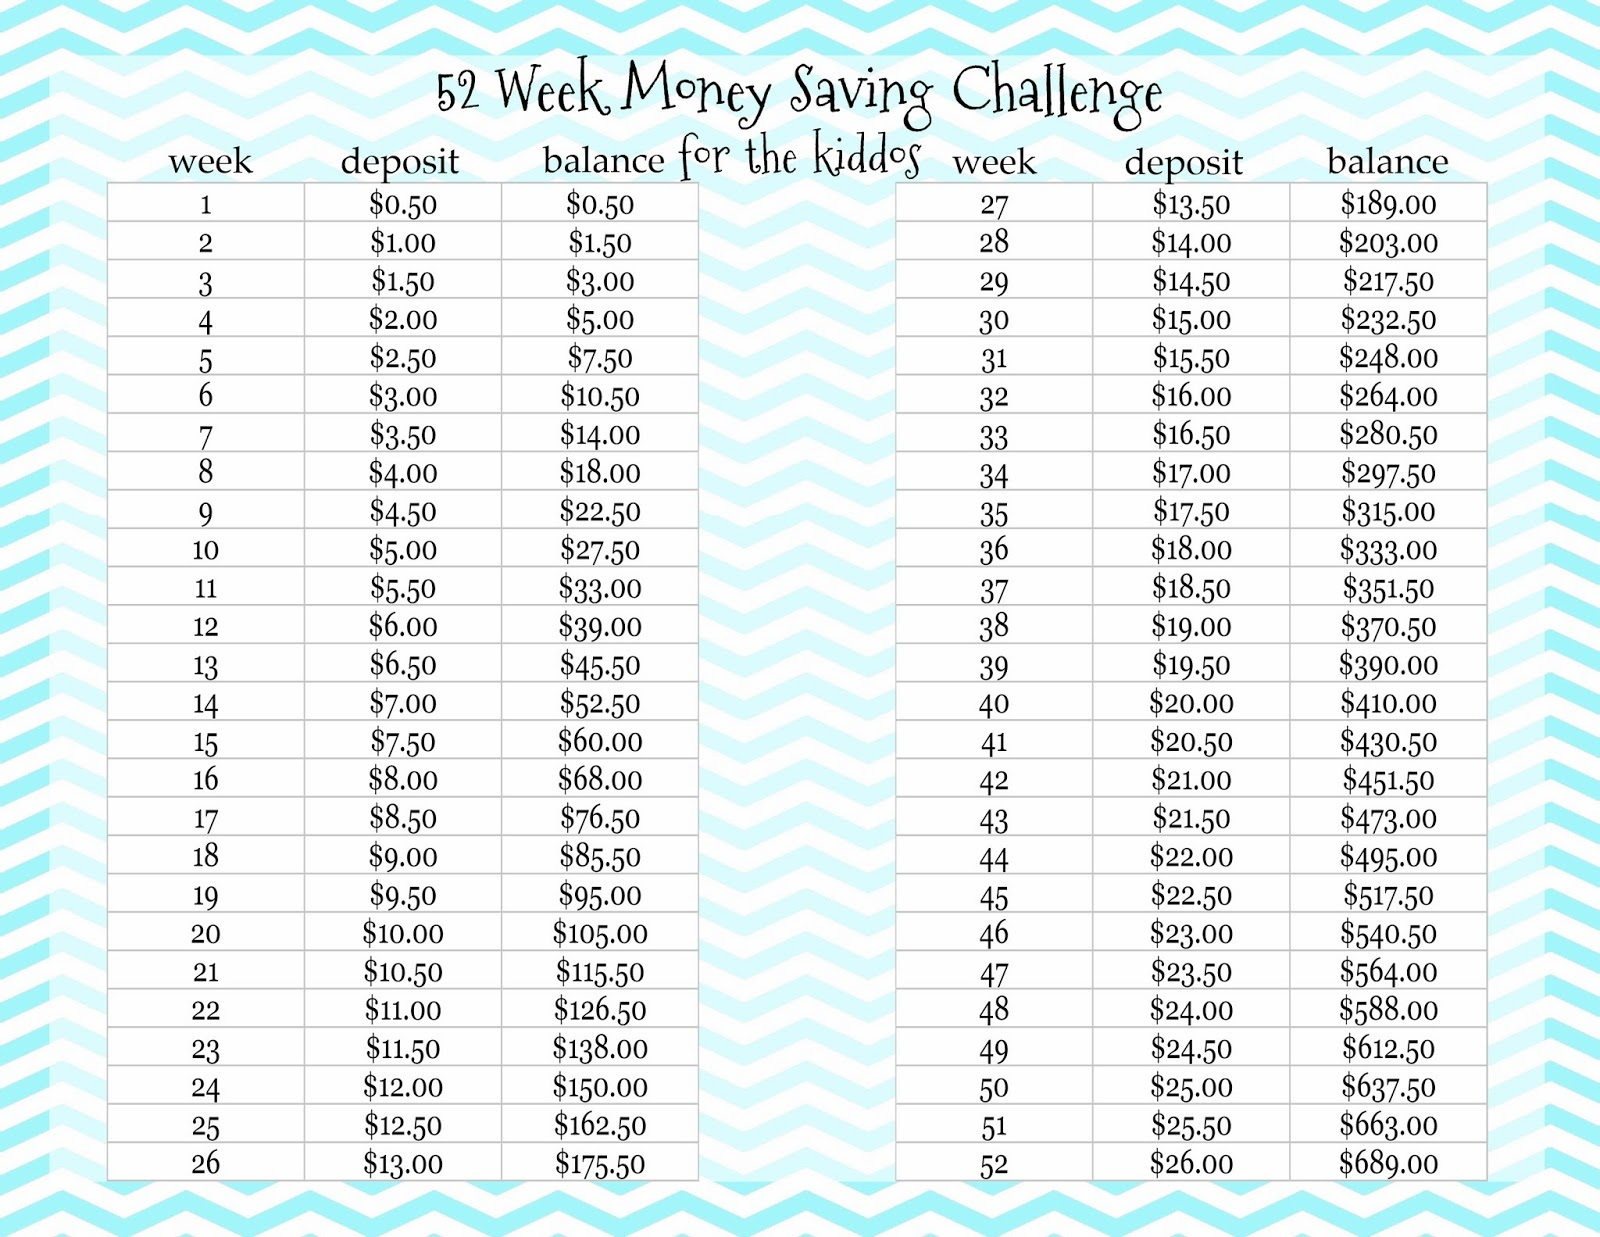 9 Best Images of 52 Week Money Challenge Printable Chart ...